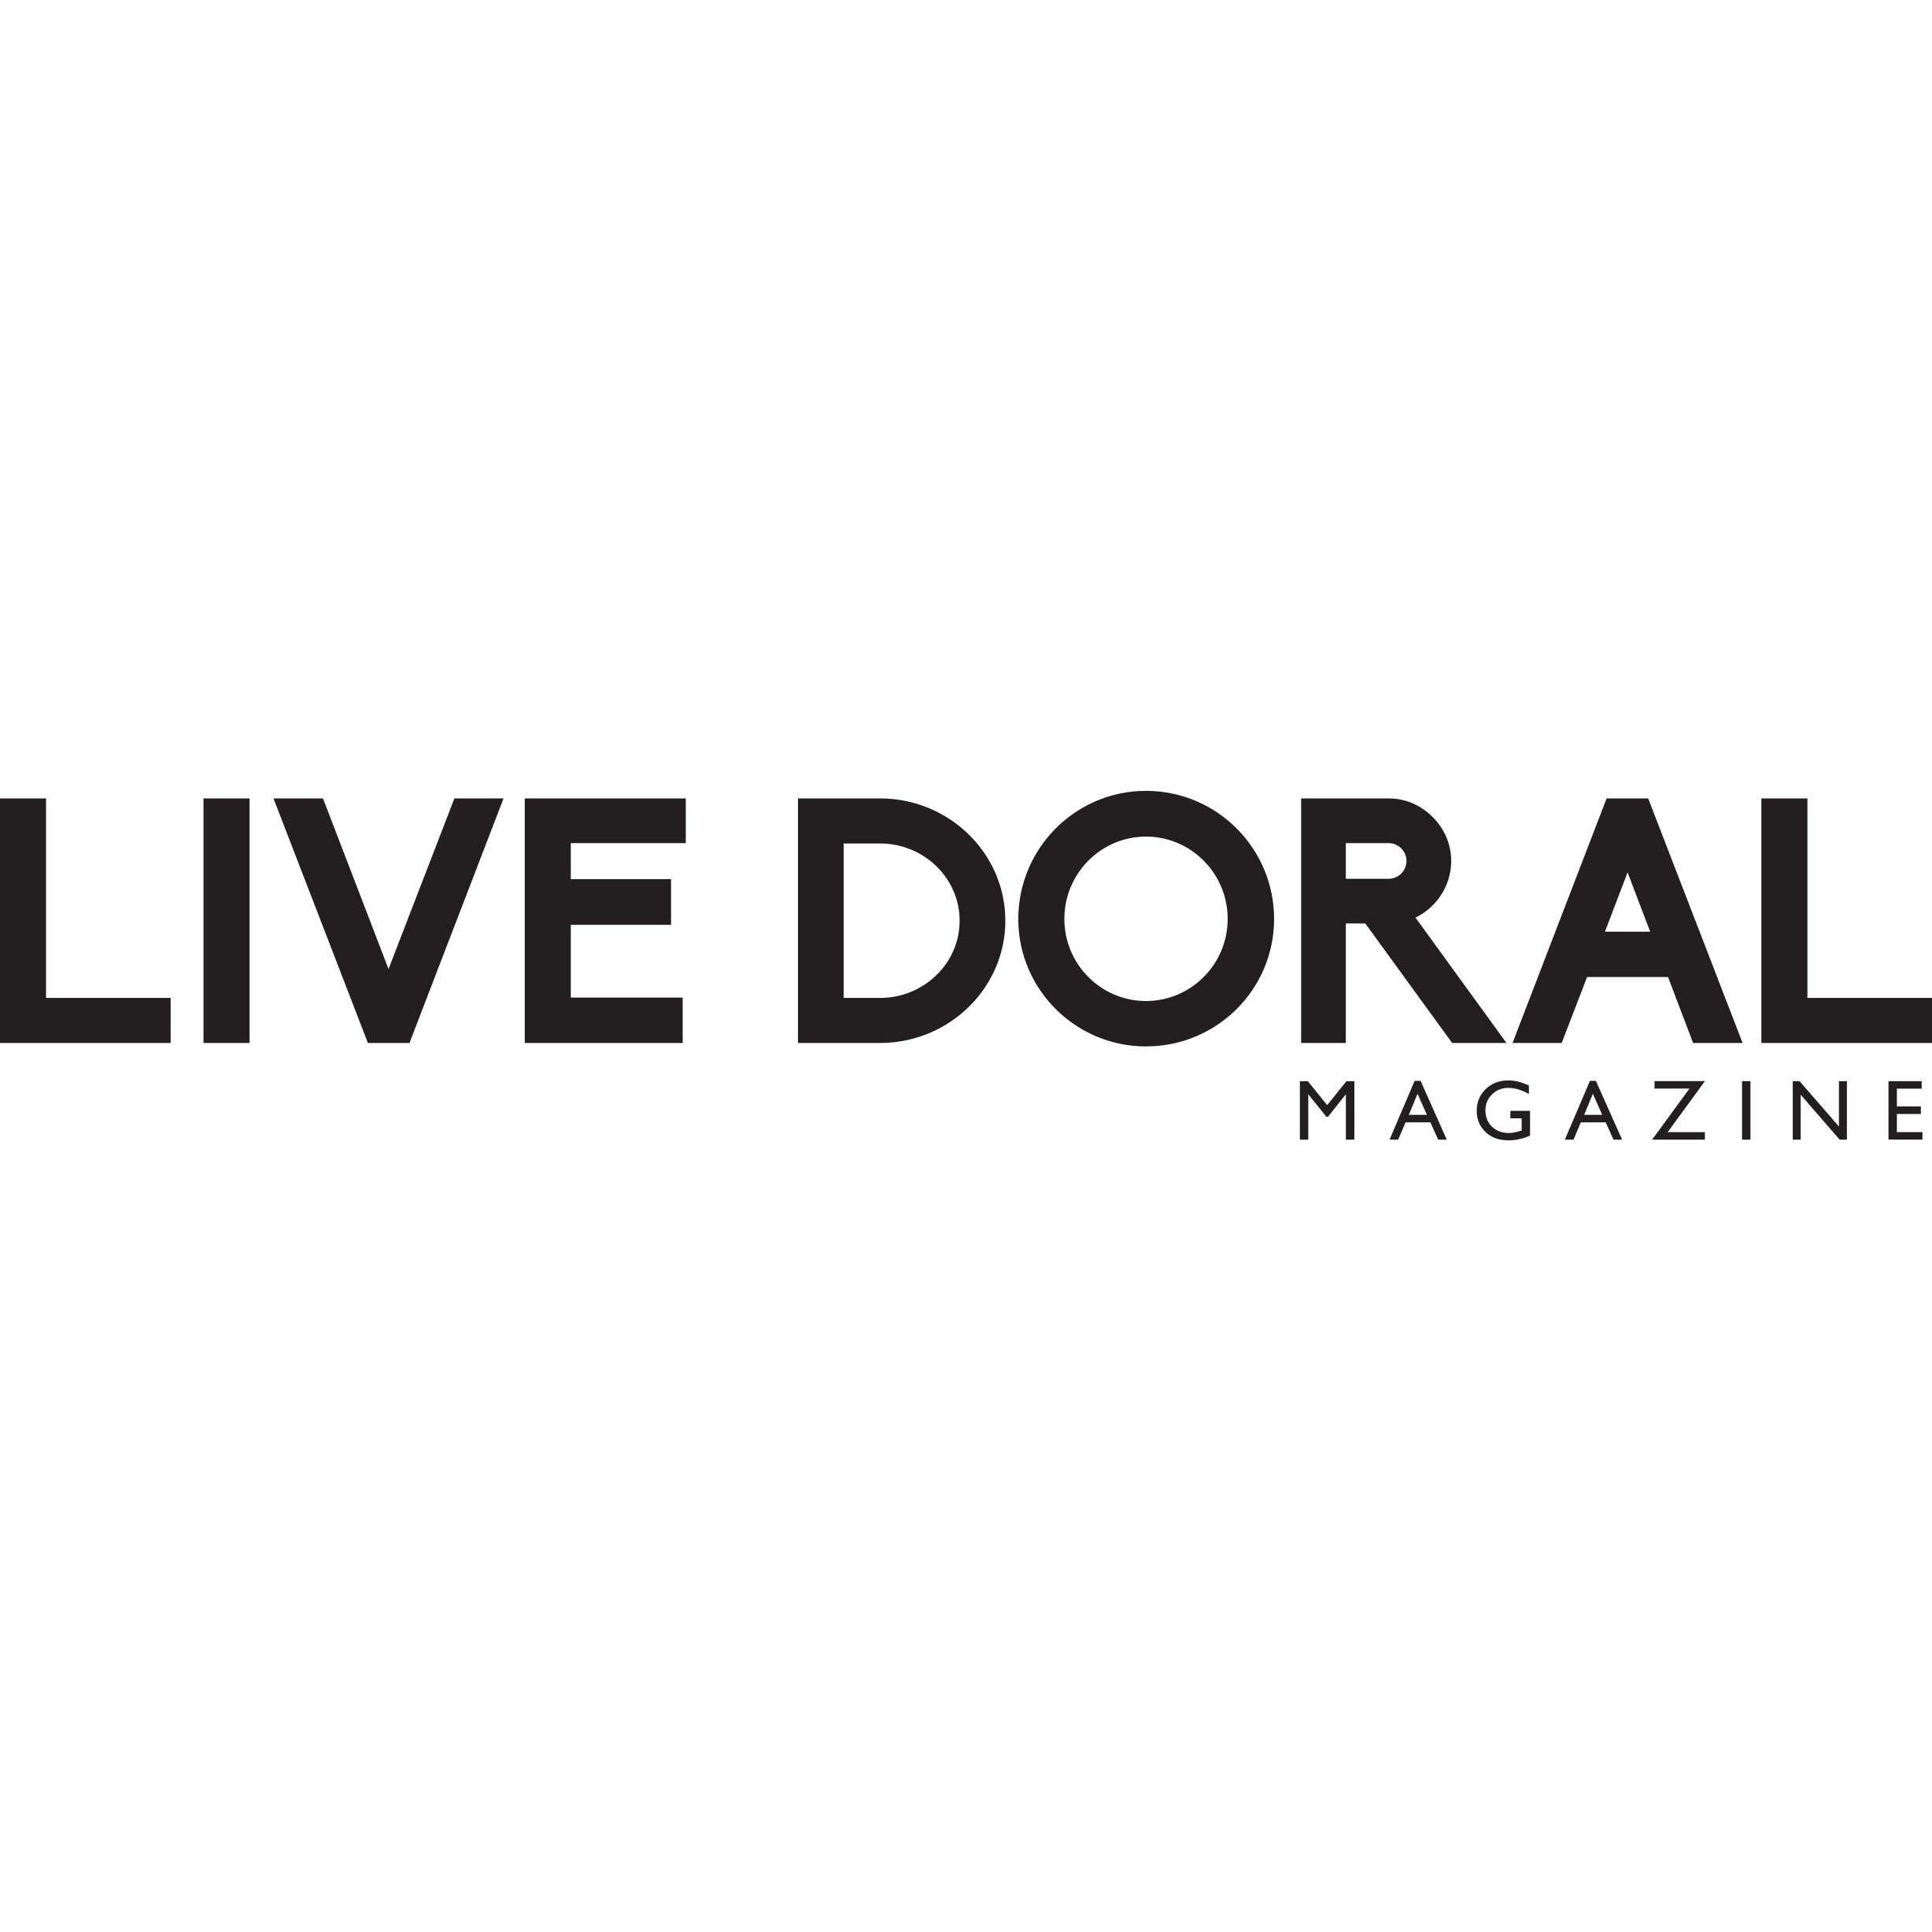 Doral Chamber of Commerce introduces Live Doral Magazine.